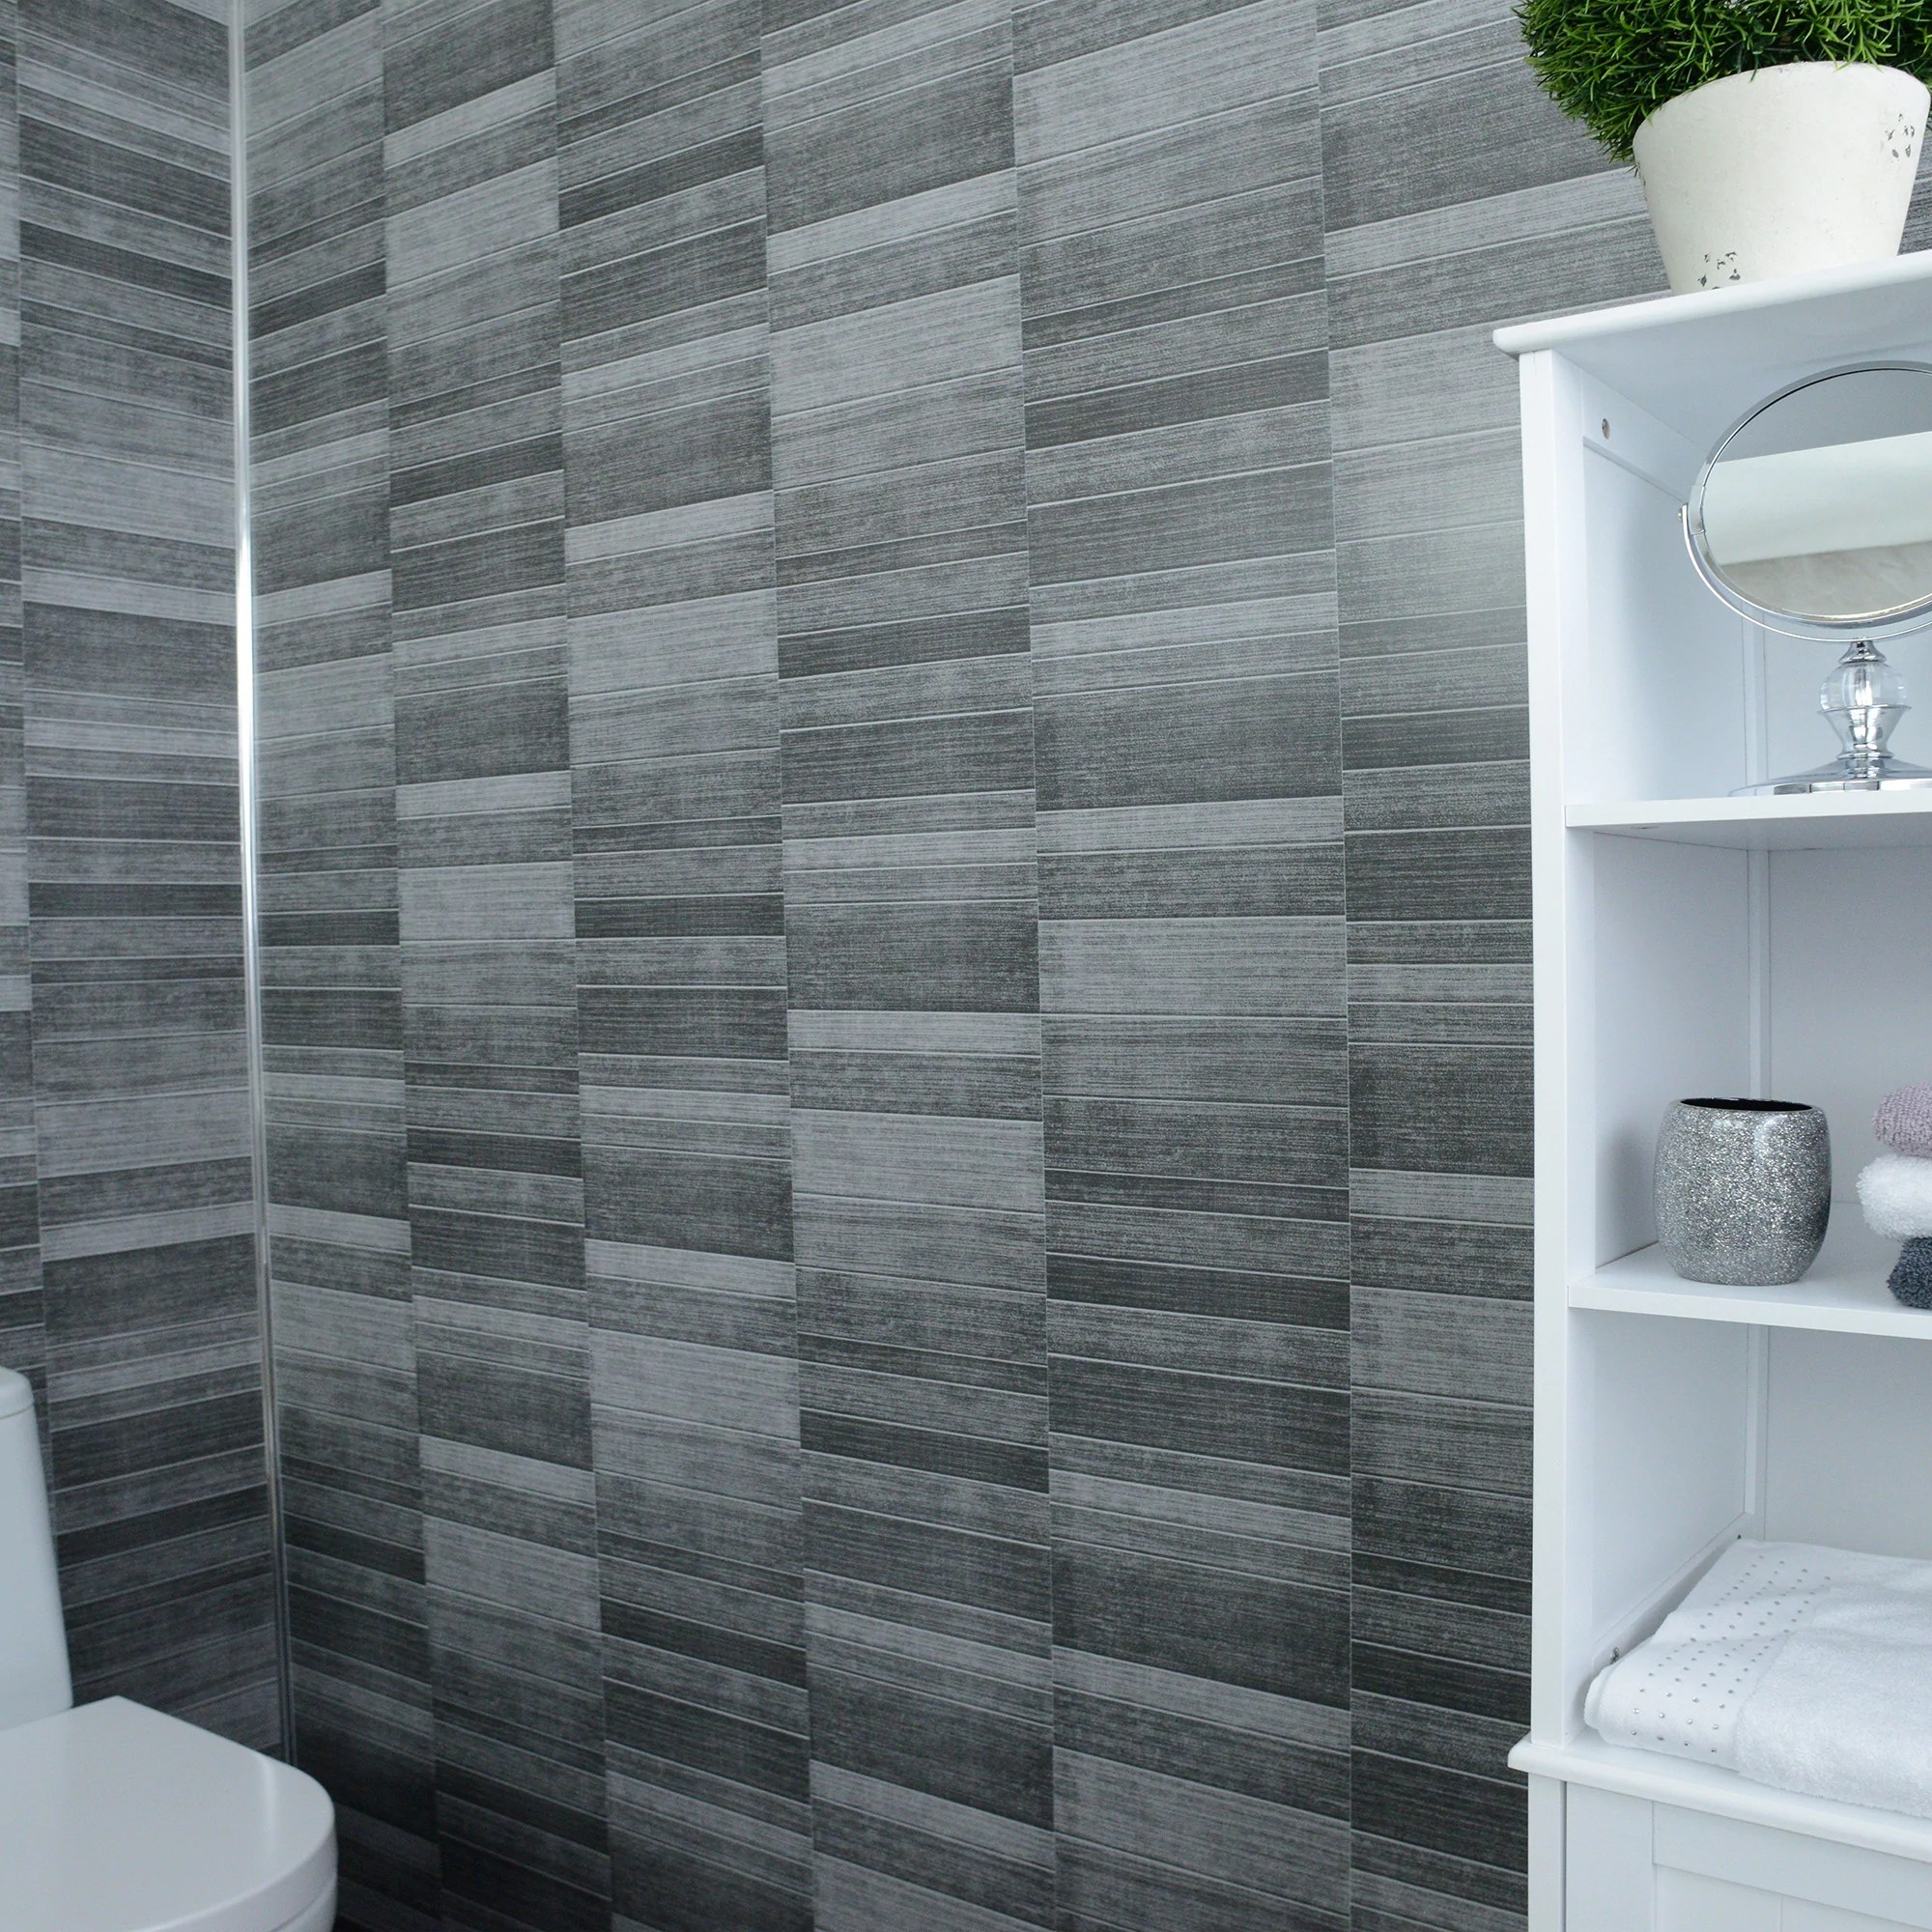 Grey Pvc Bathroom Cladding Wall Panels Large 2 4m X 1m Grey Marble 100 Waterproof By Claddtech Shower Wall Panels